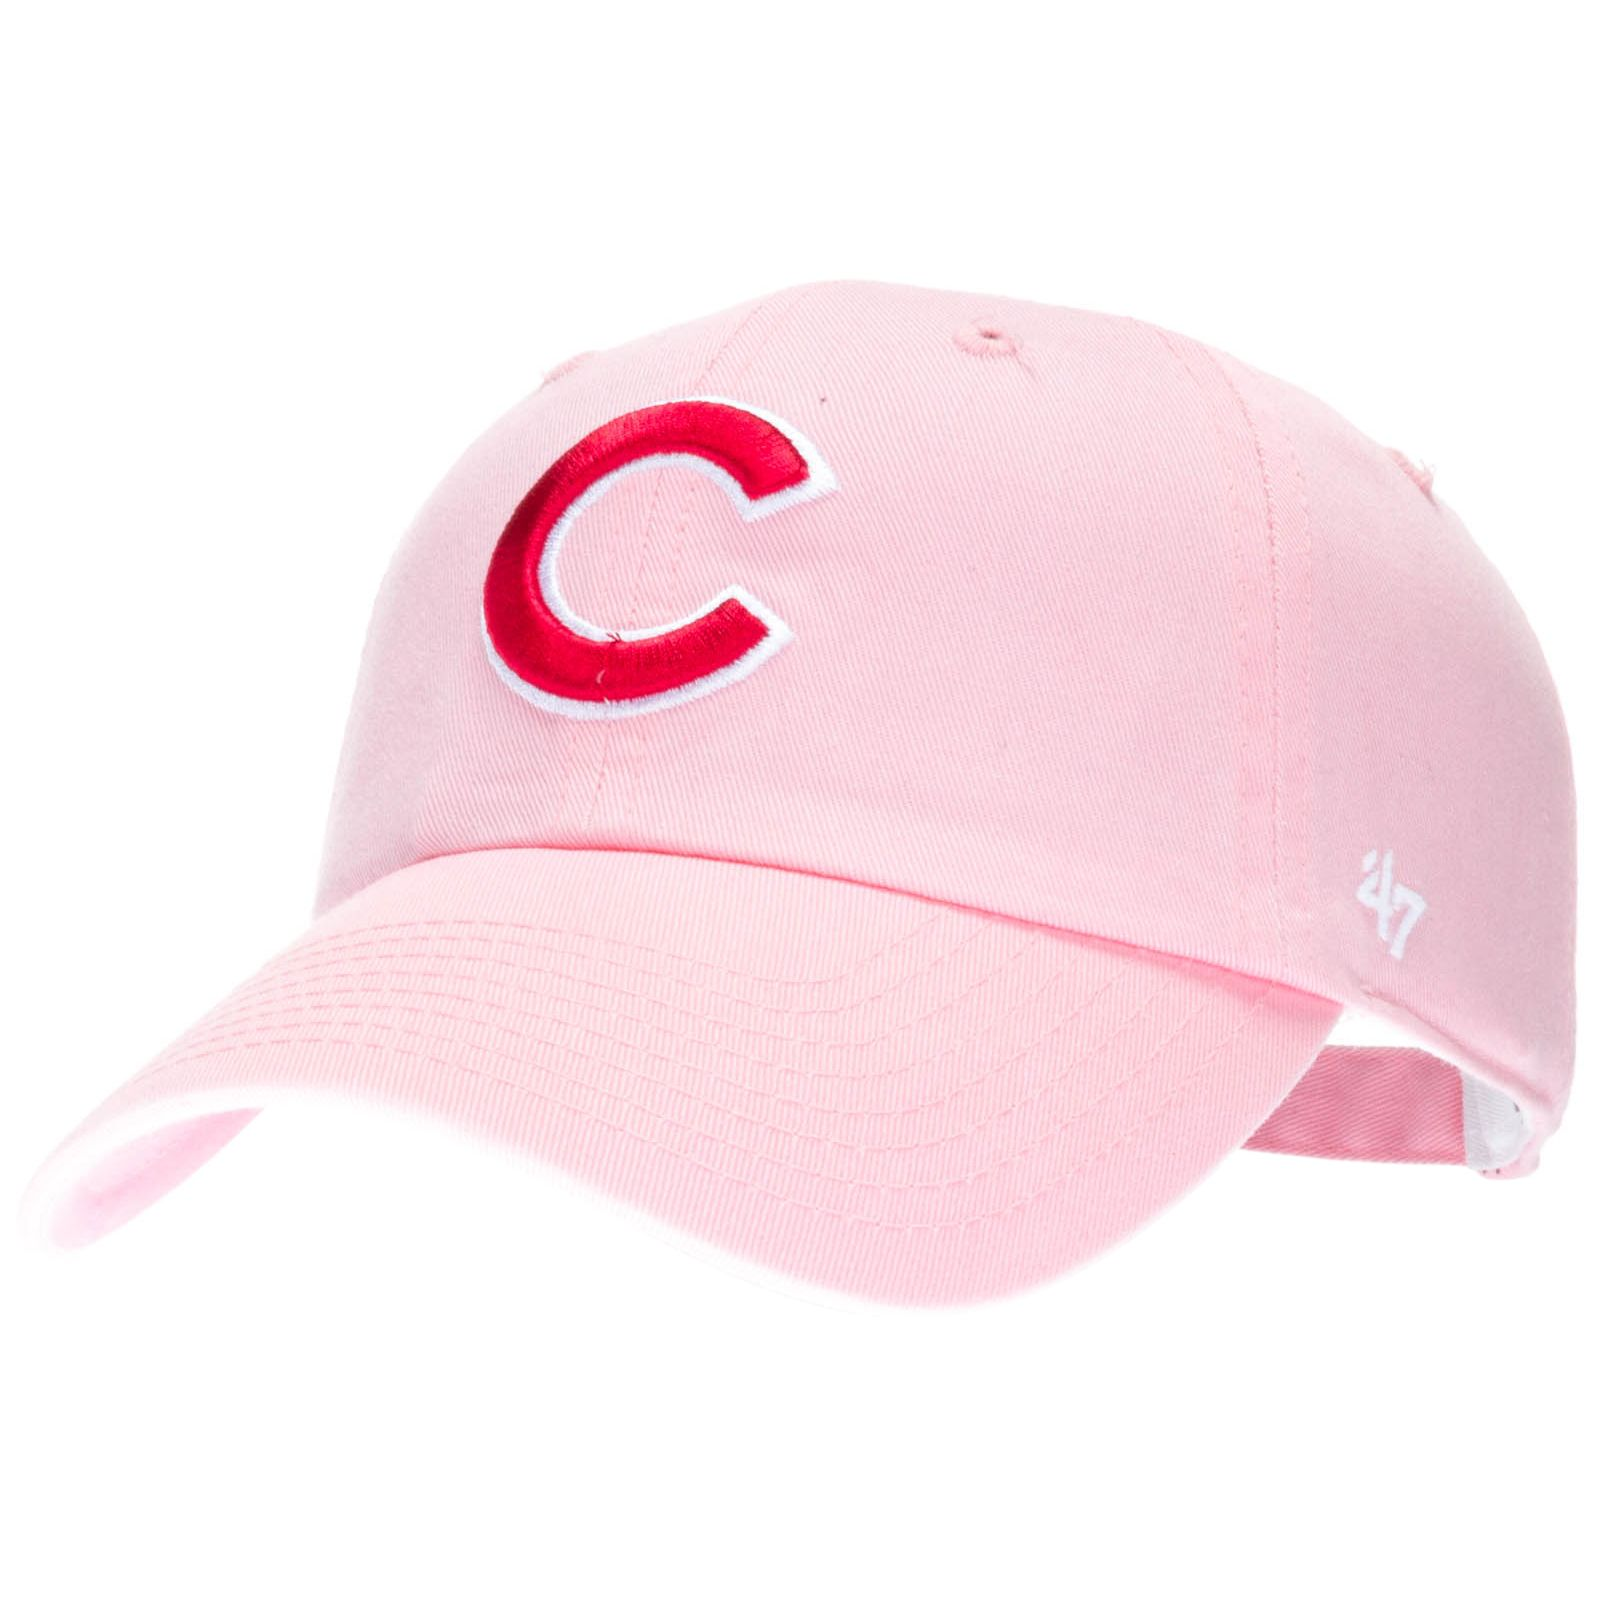 classic fit e760f 57383 Chicago Cubs Women s Pink with Red